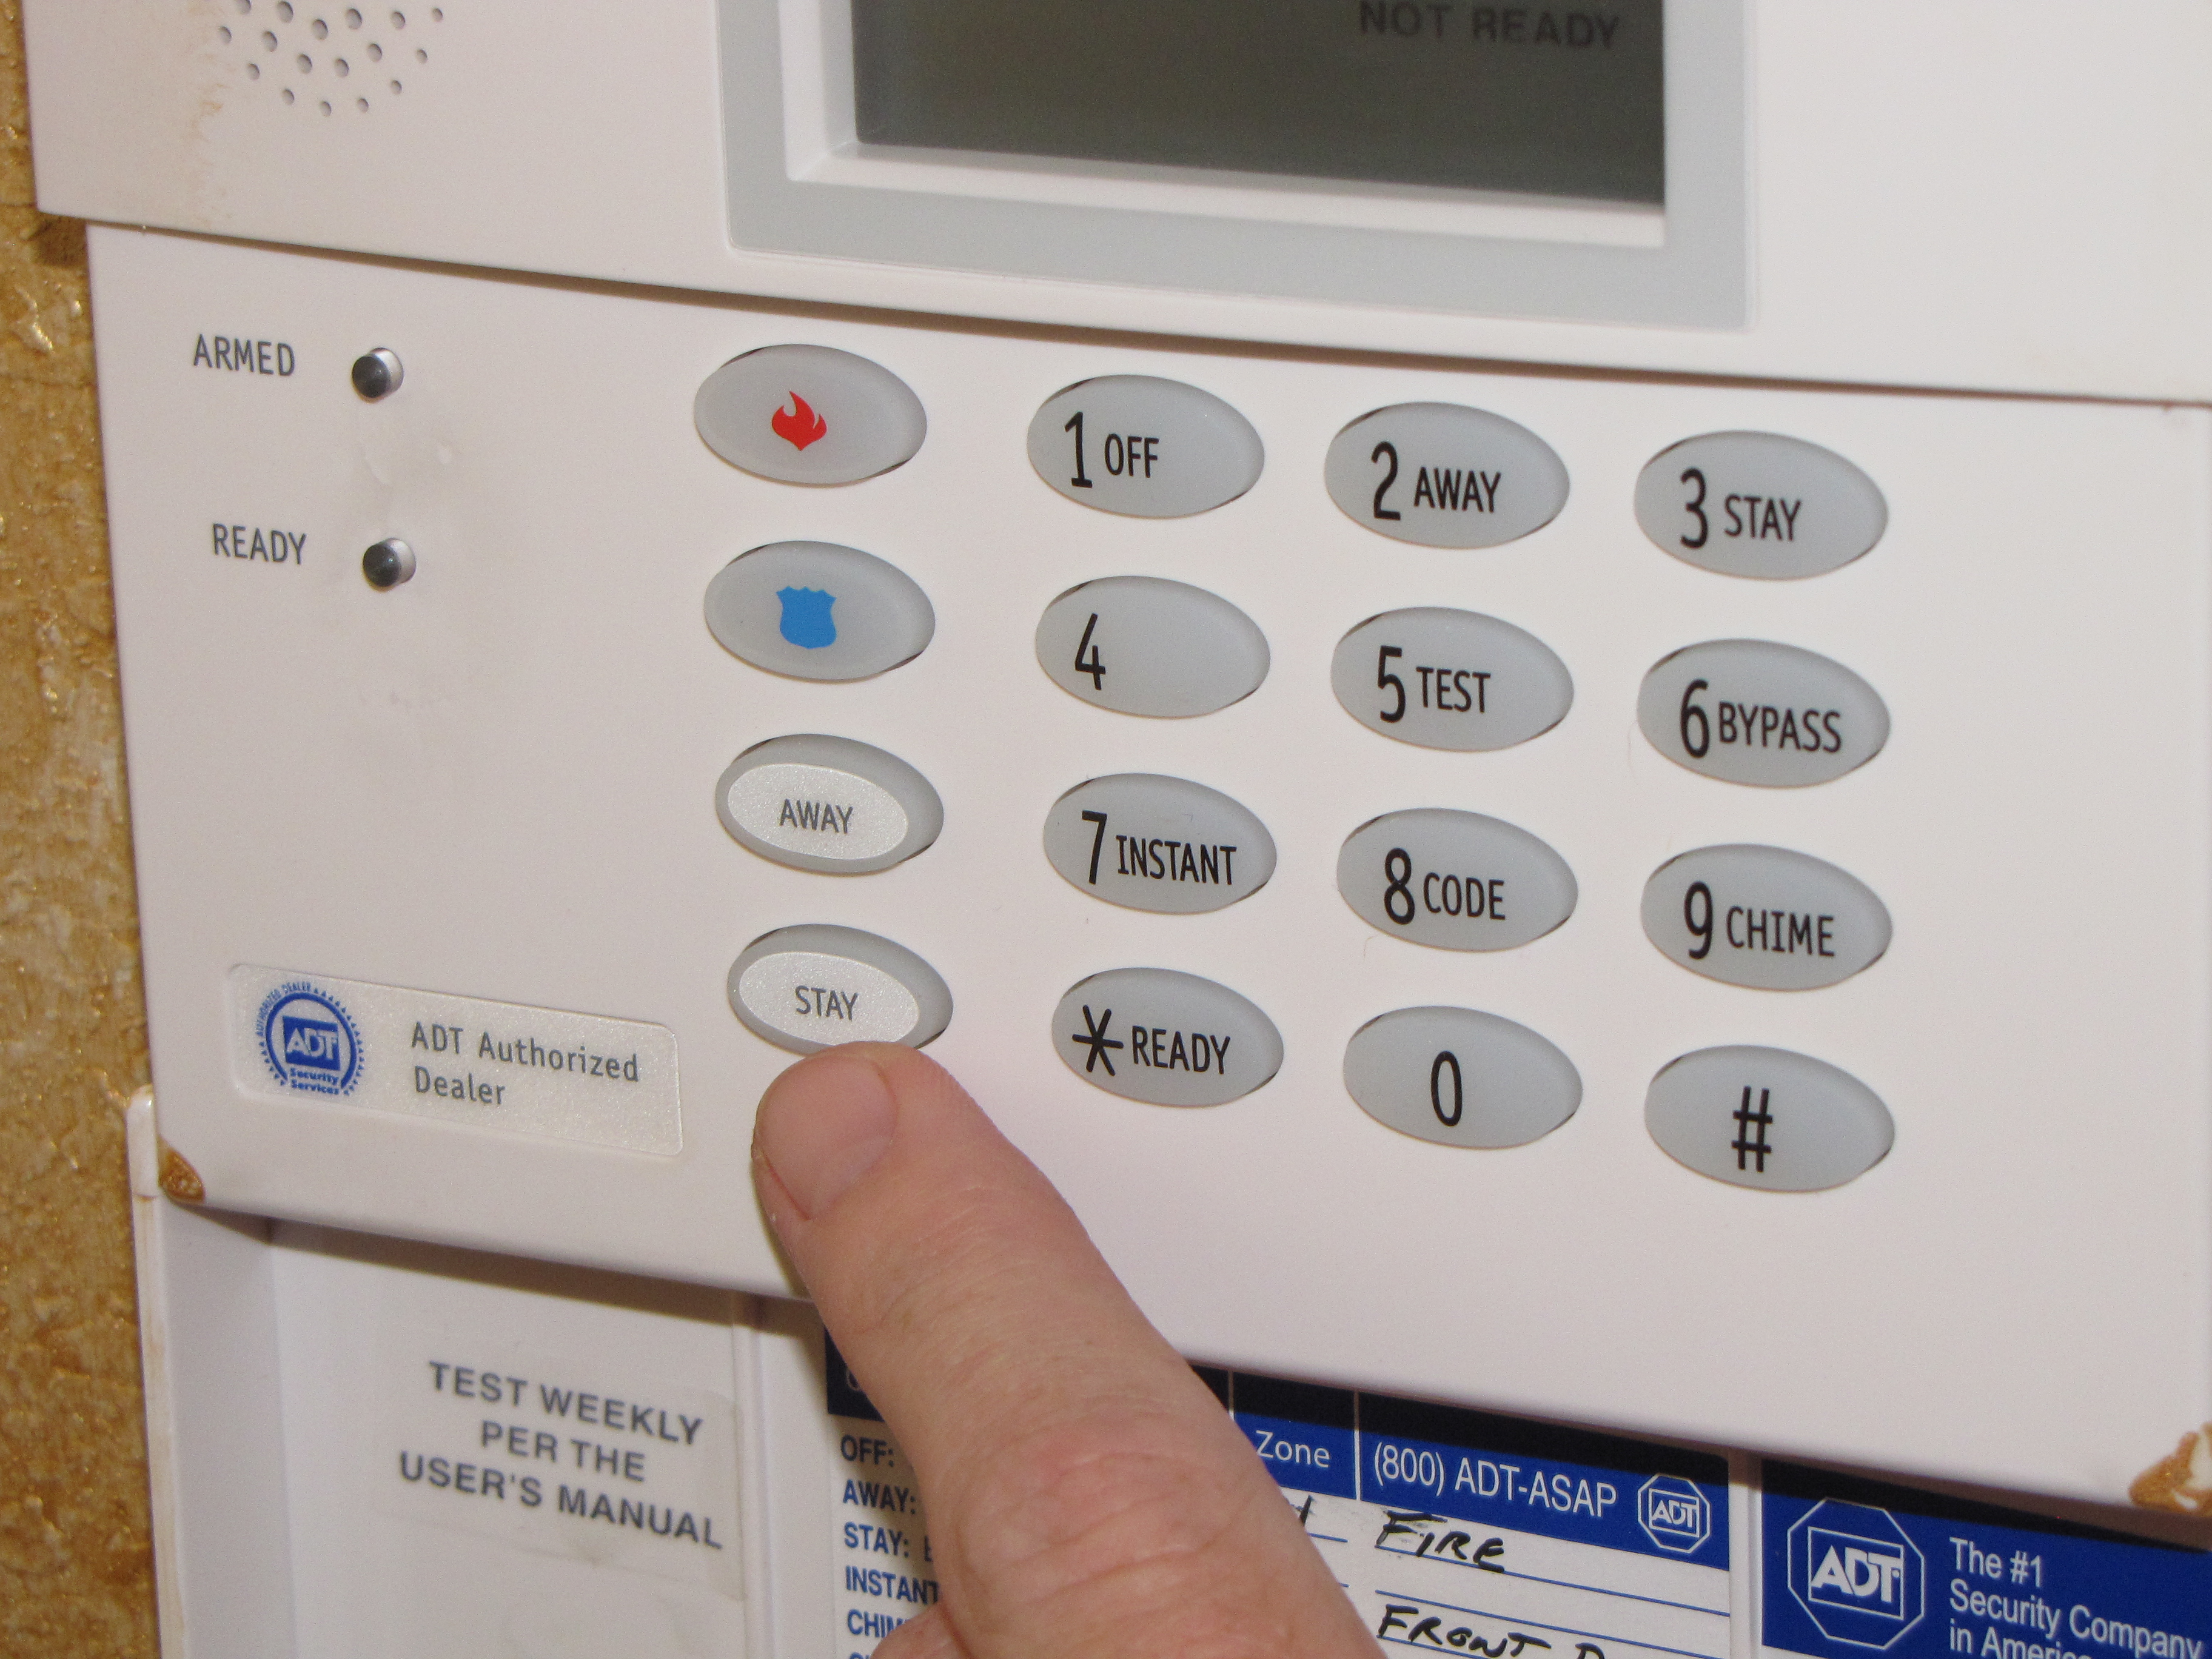 Image of an alarm system